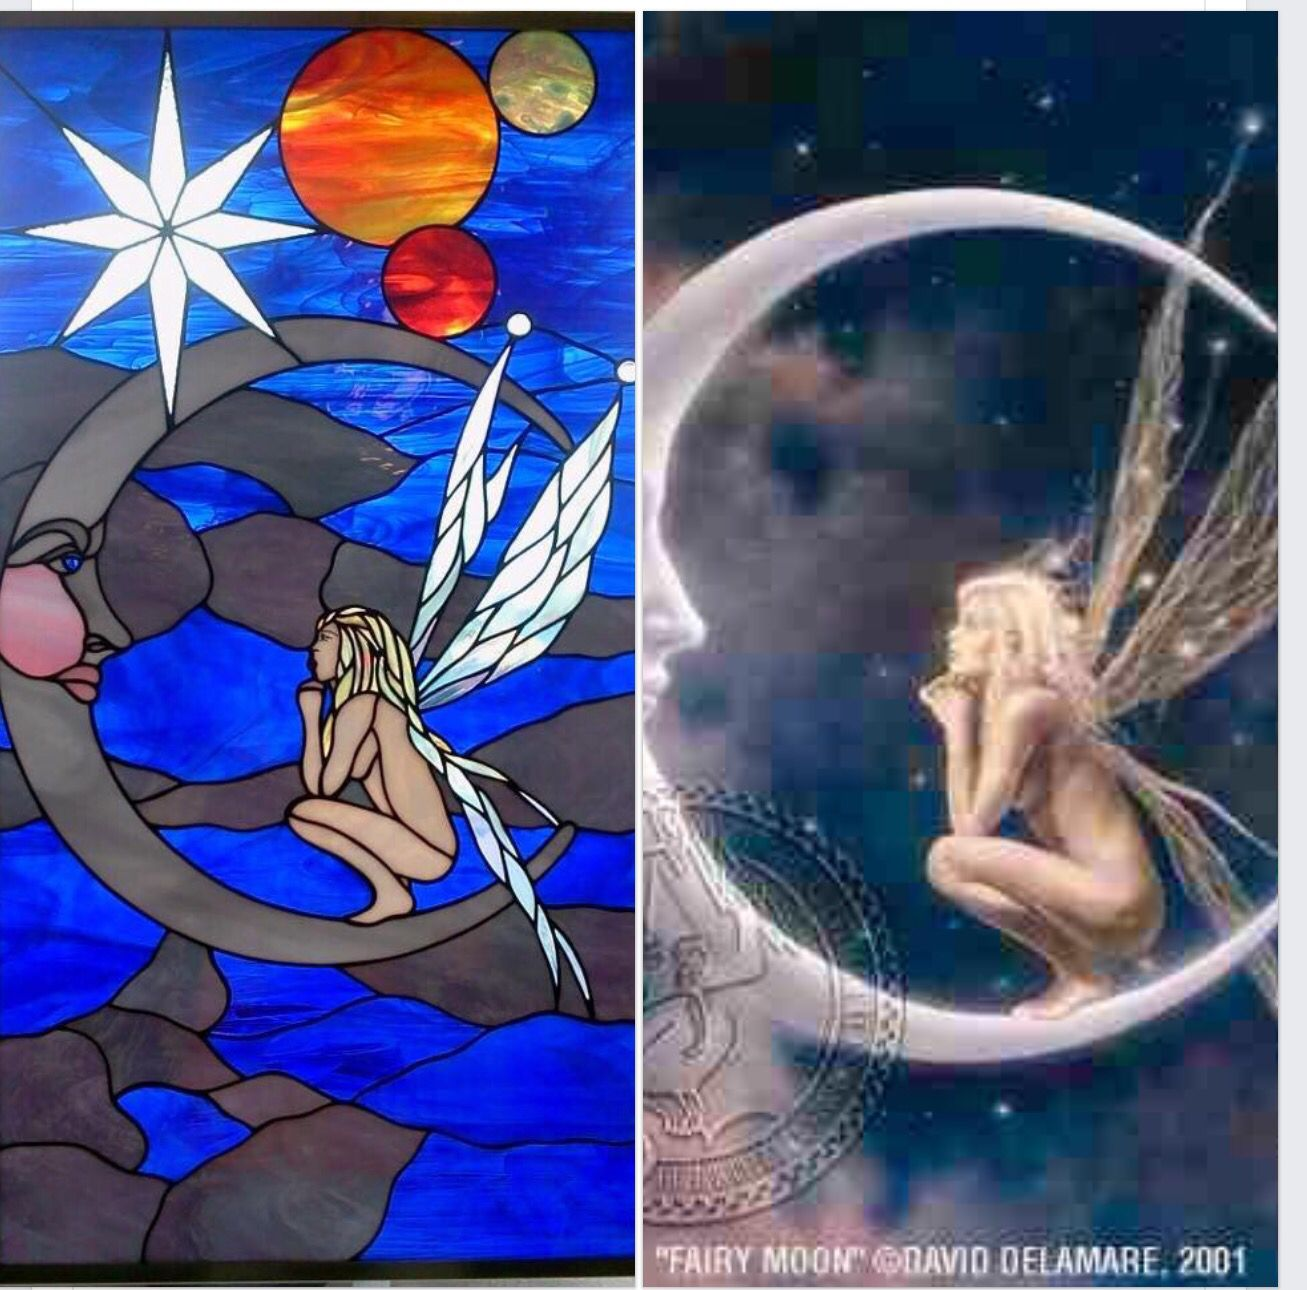 J&M Stained Glass, North Myrtle Beach SC Fairy on moon commission. Based on the accompanying photo.